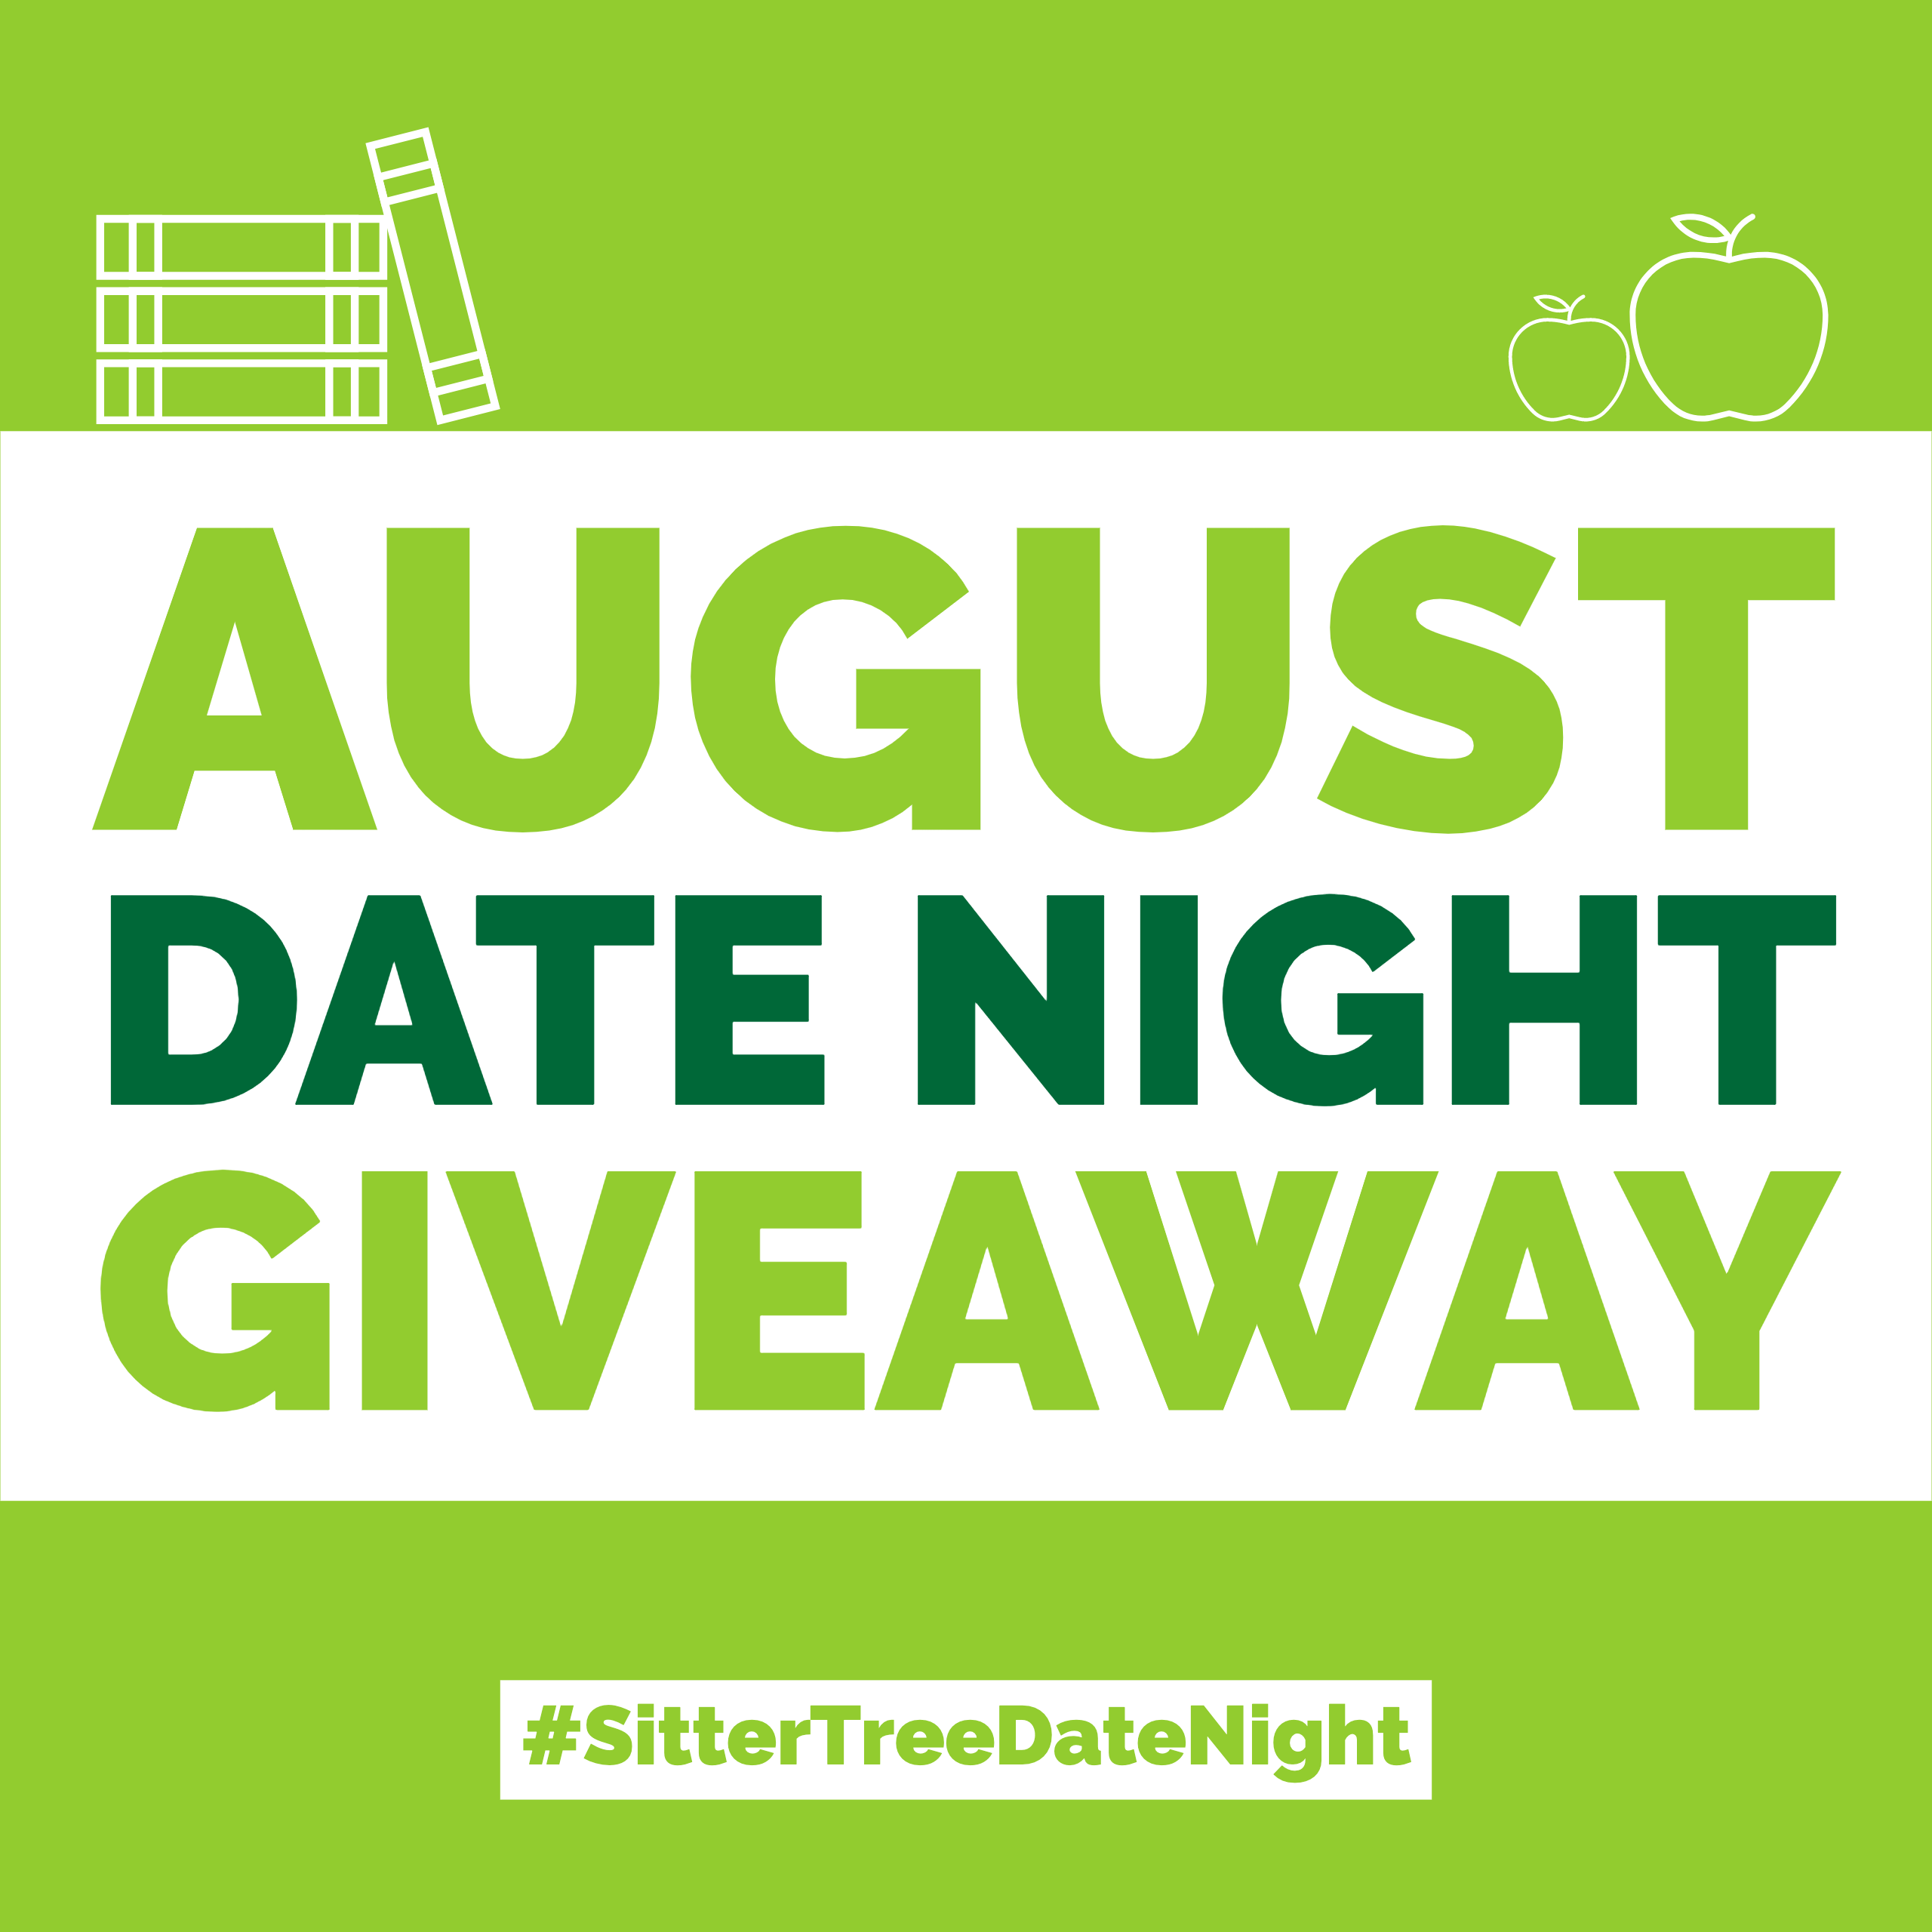 August date night giveaway